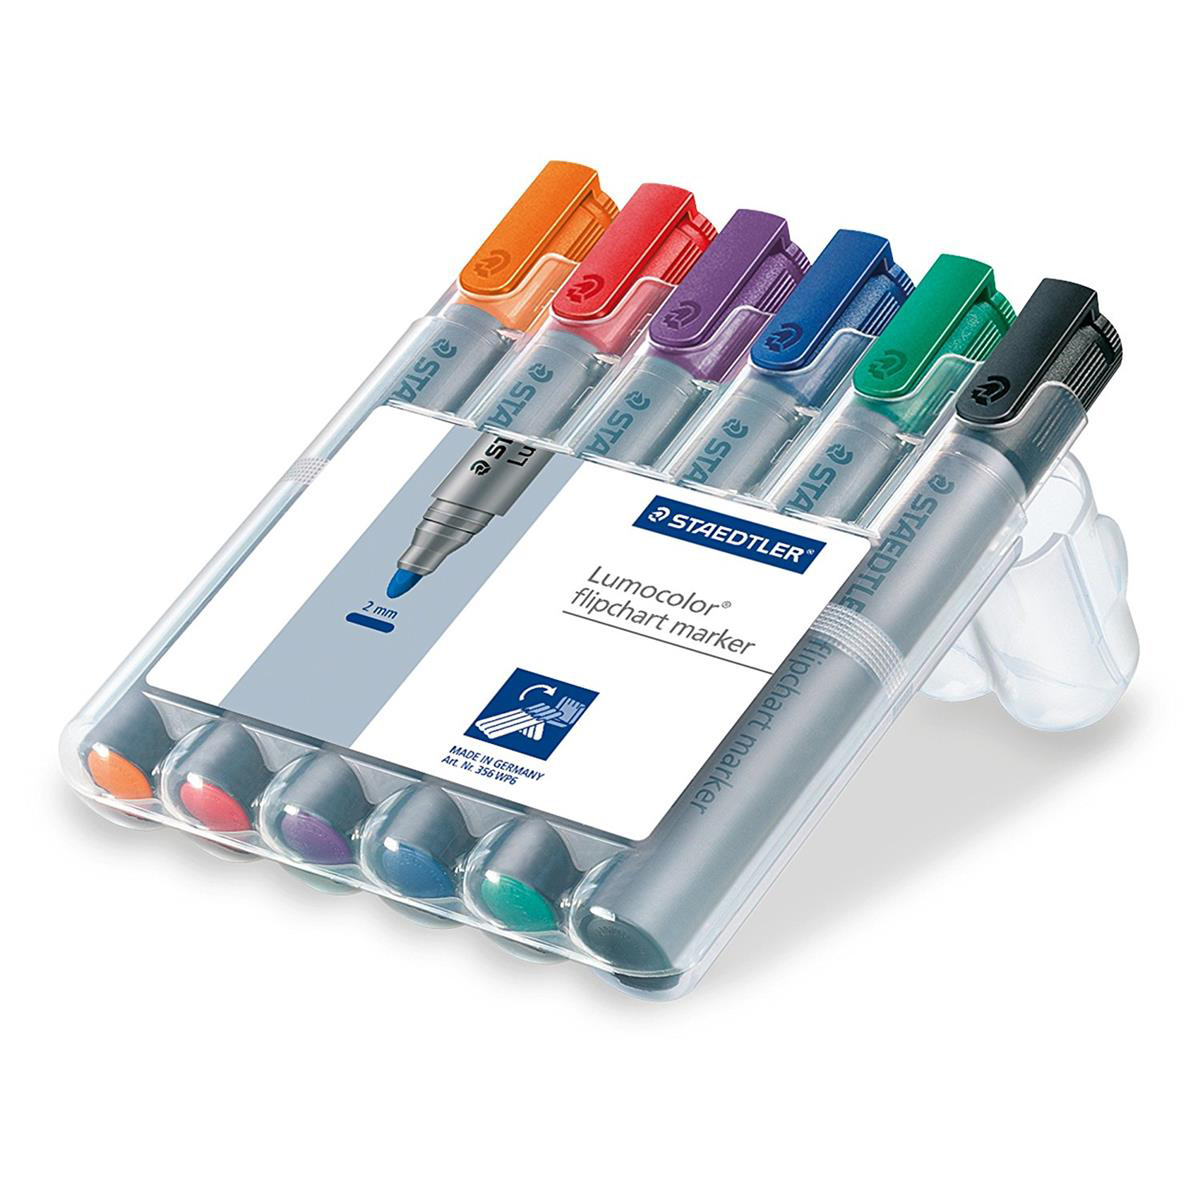 Staedtler Lumocolor Flipchart Markers Water-based Dry-safe Bullet Tip 2mm Assorted Ref 356 WP6 [Pack 6]